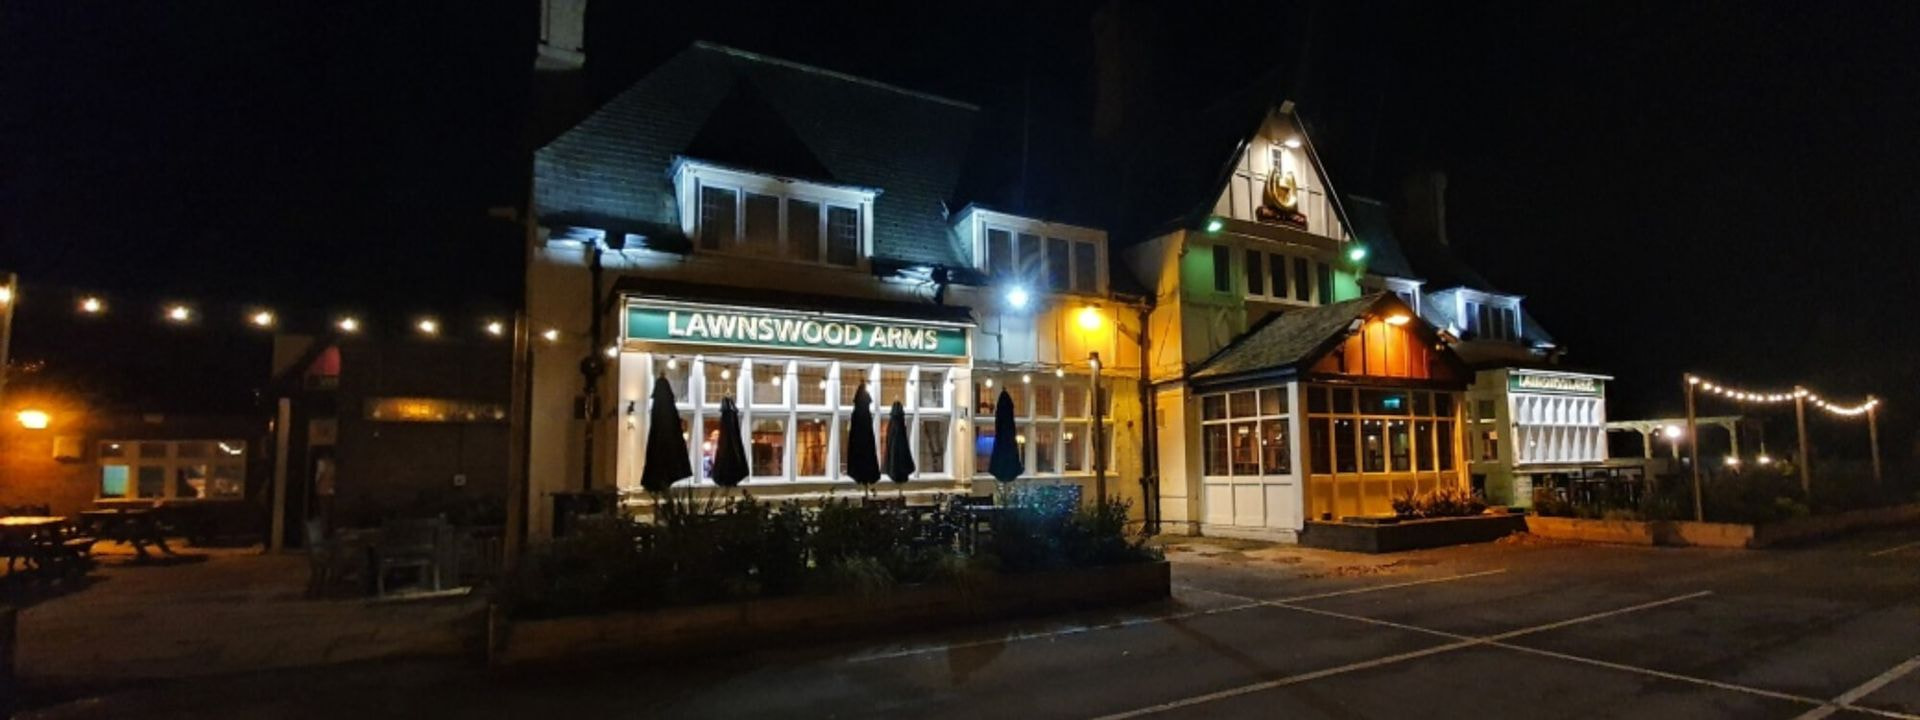 The Lawnswood Arms Pub